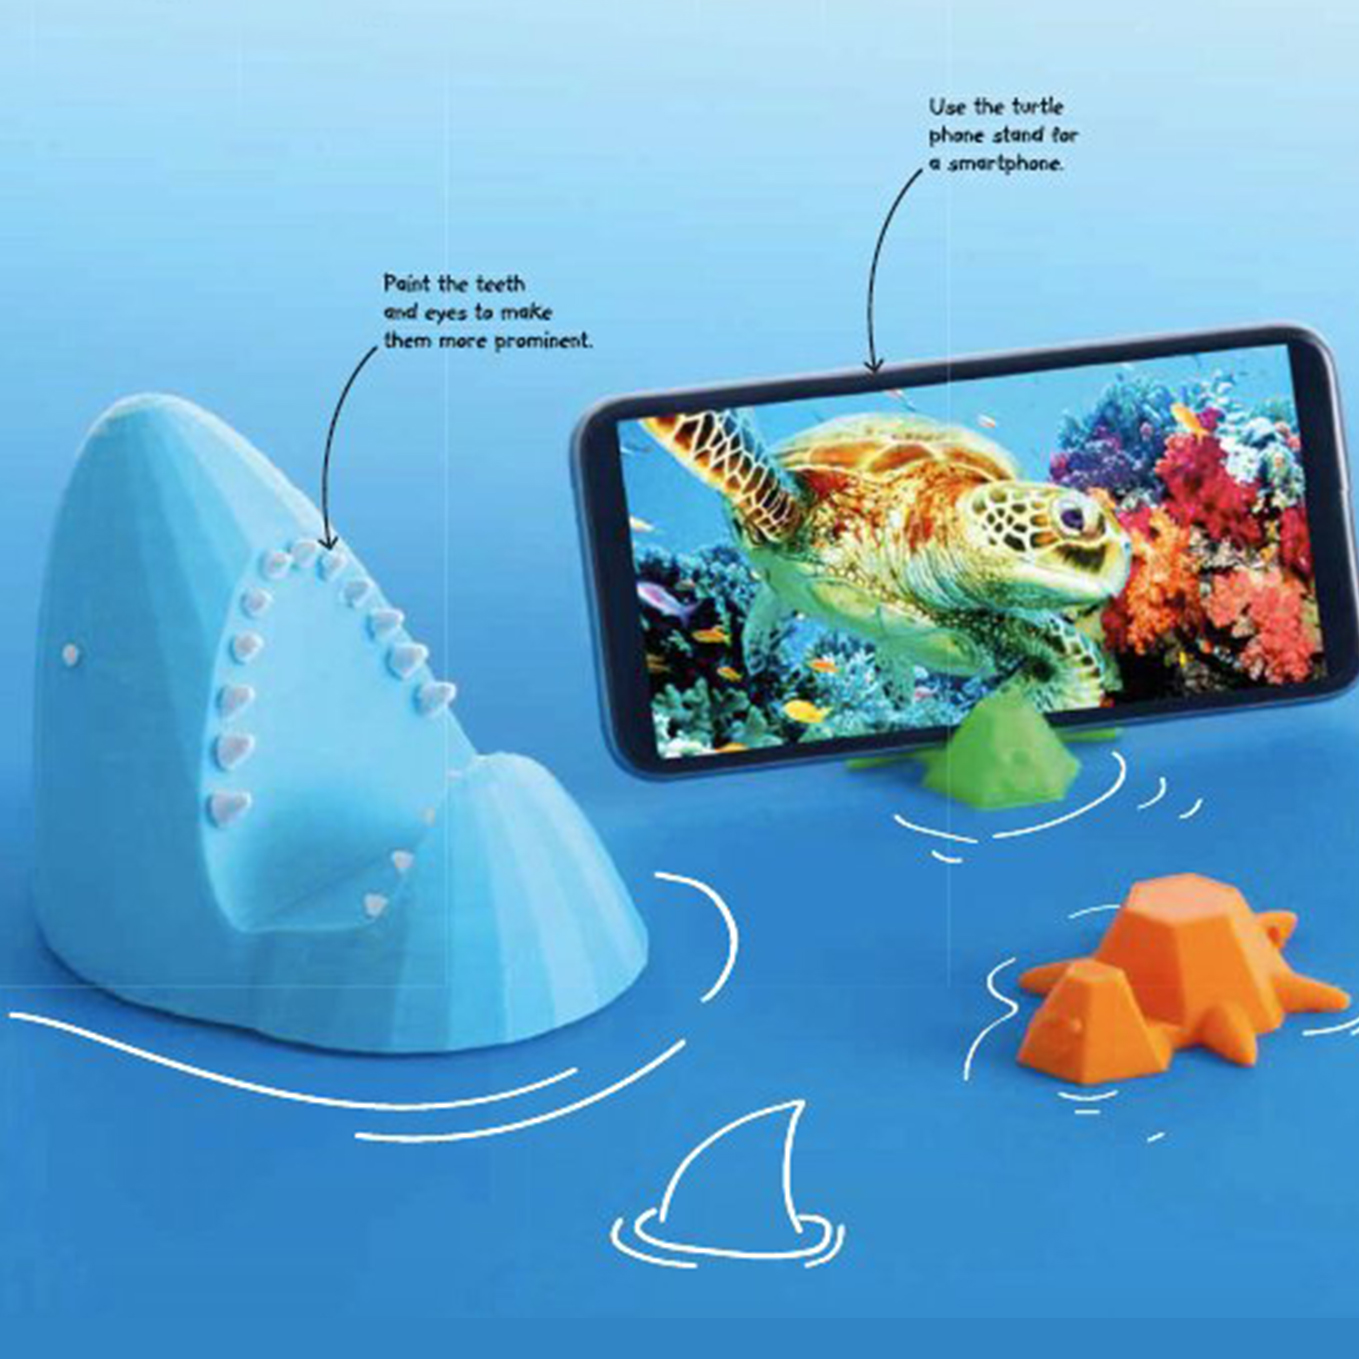 Discover: 3D Printing- Shark or Turtle Phone Stand